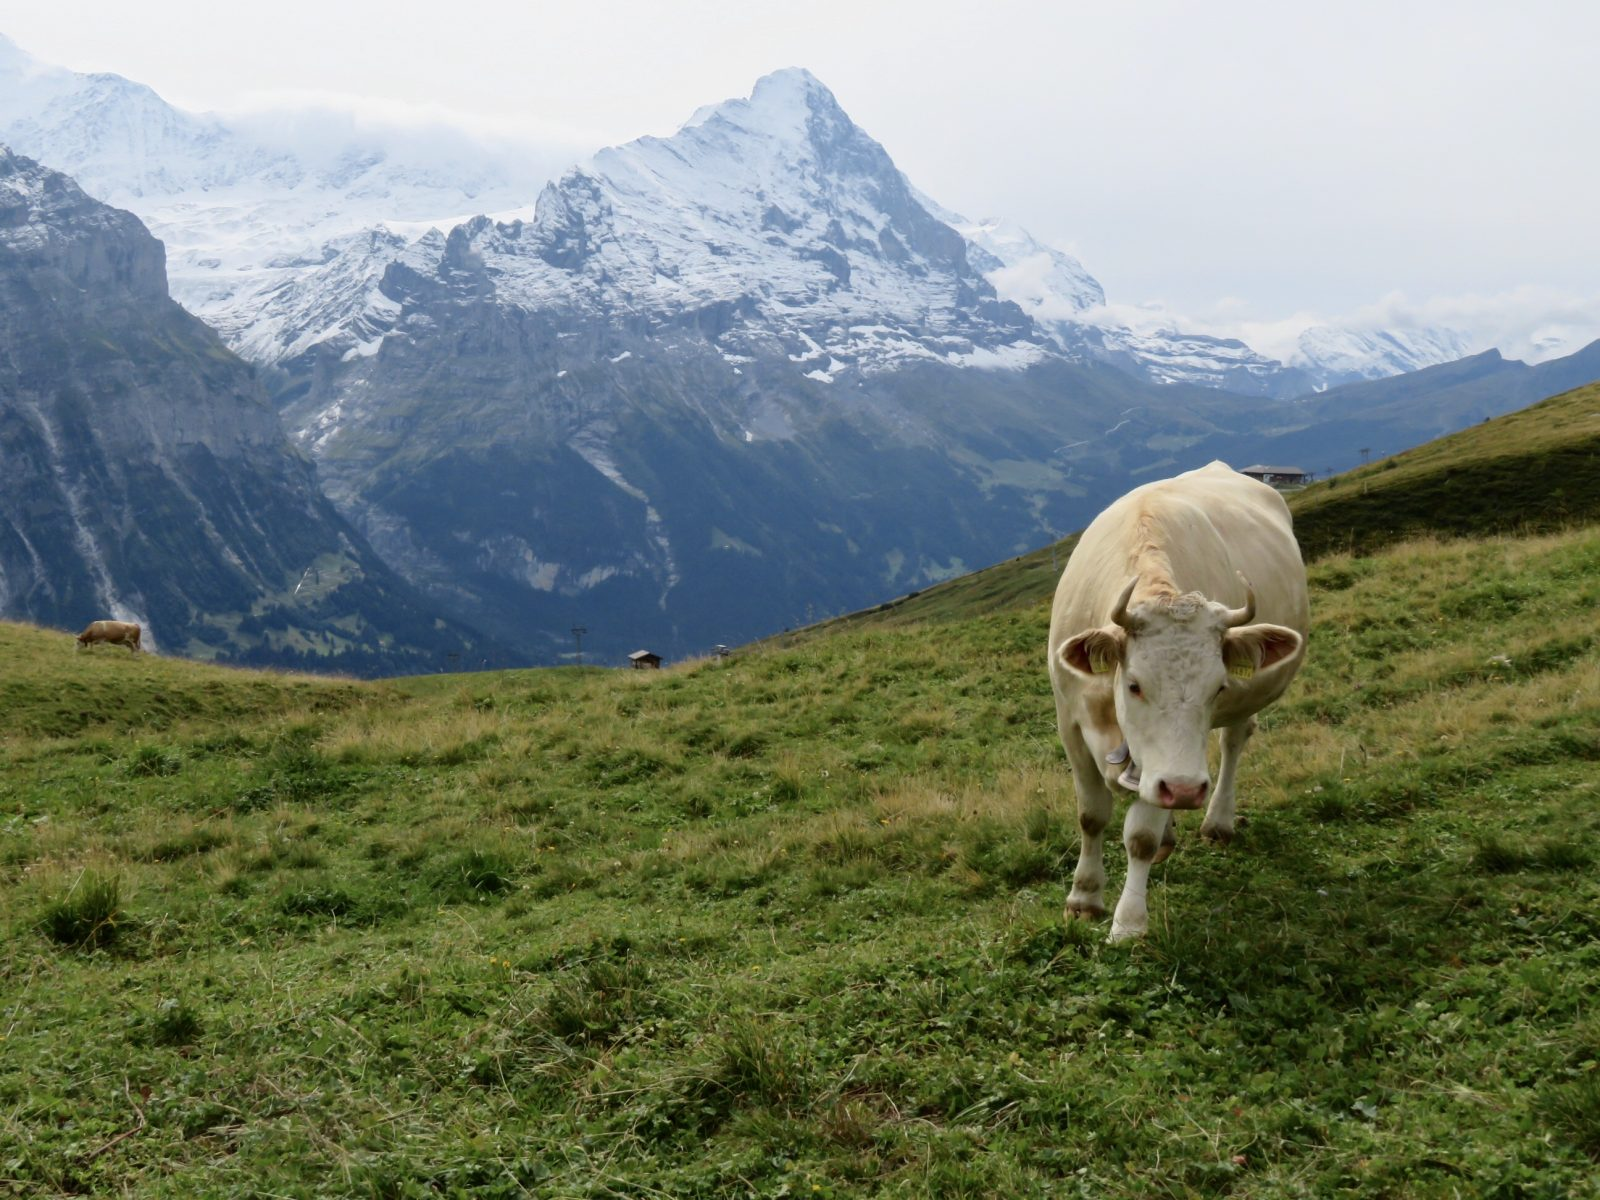 Grosse Scheidegg to First